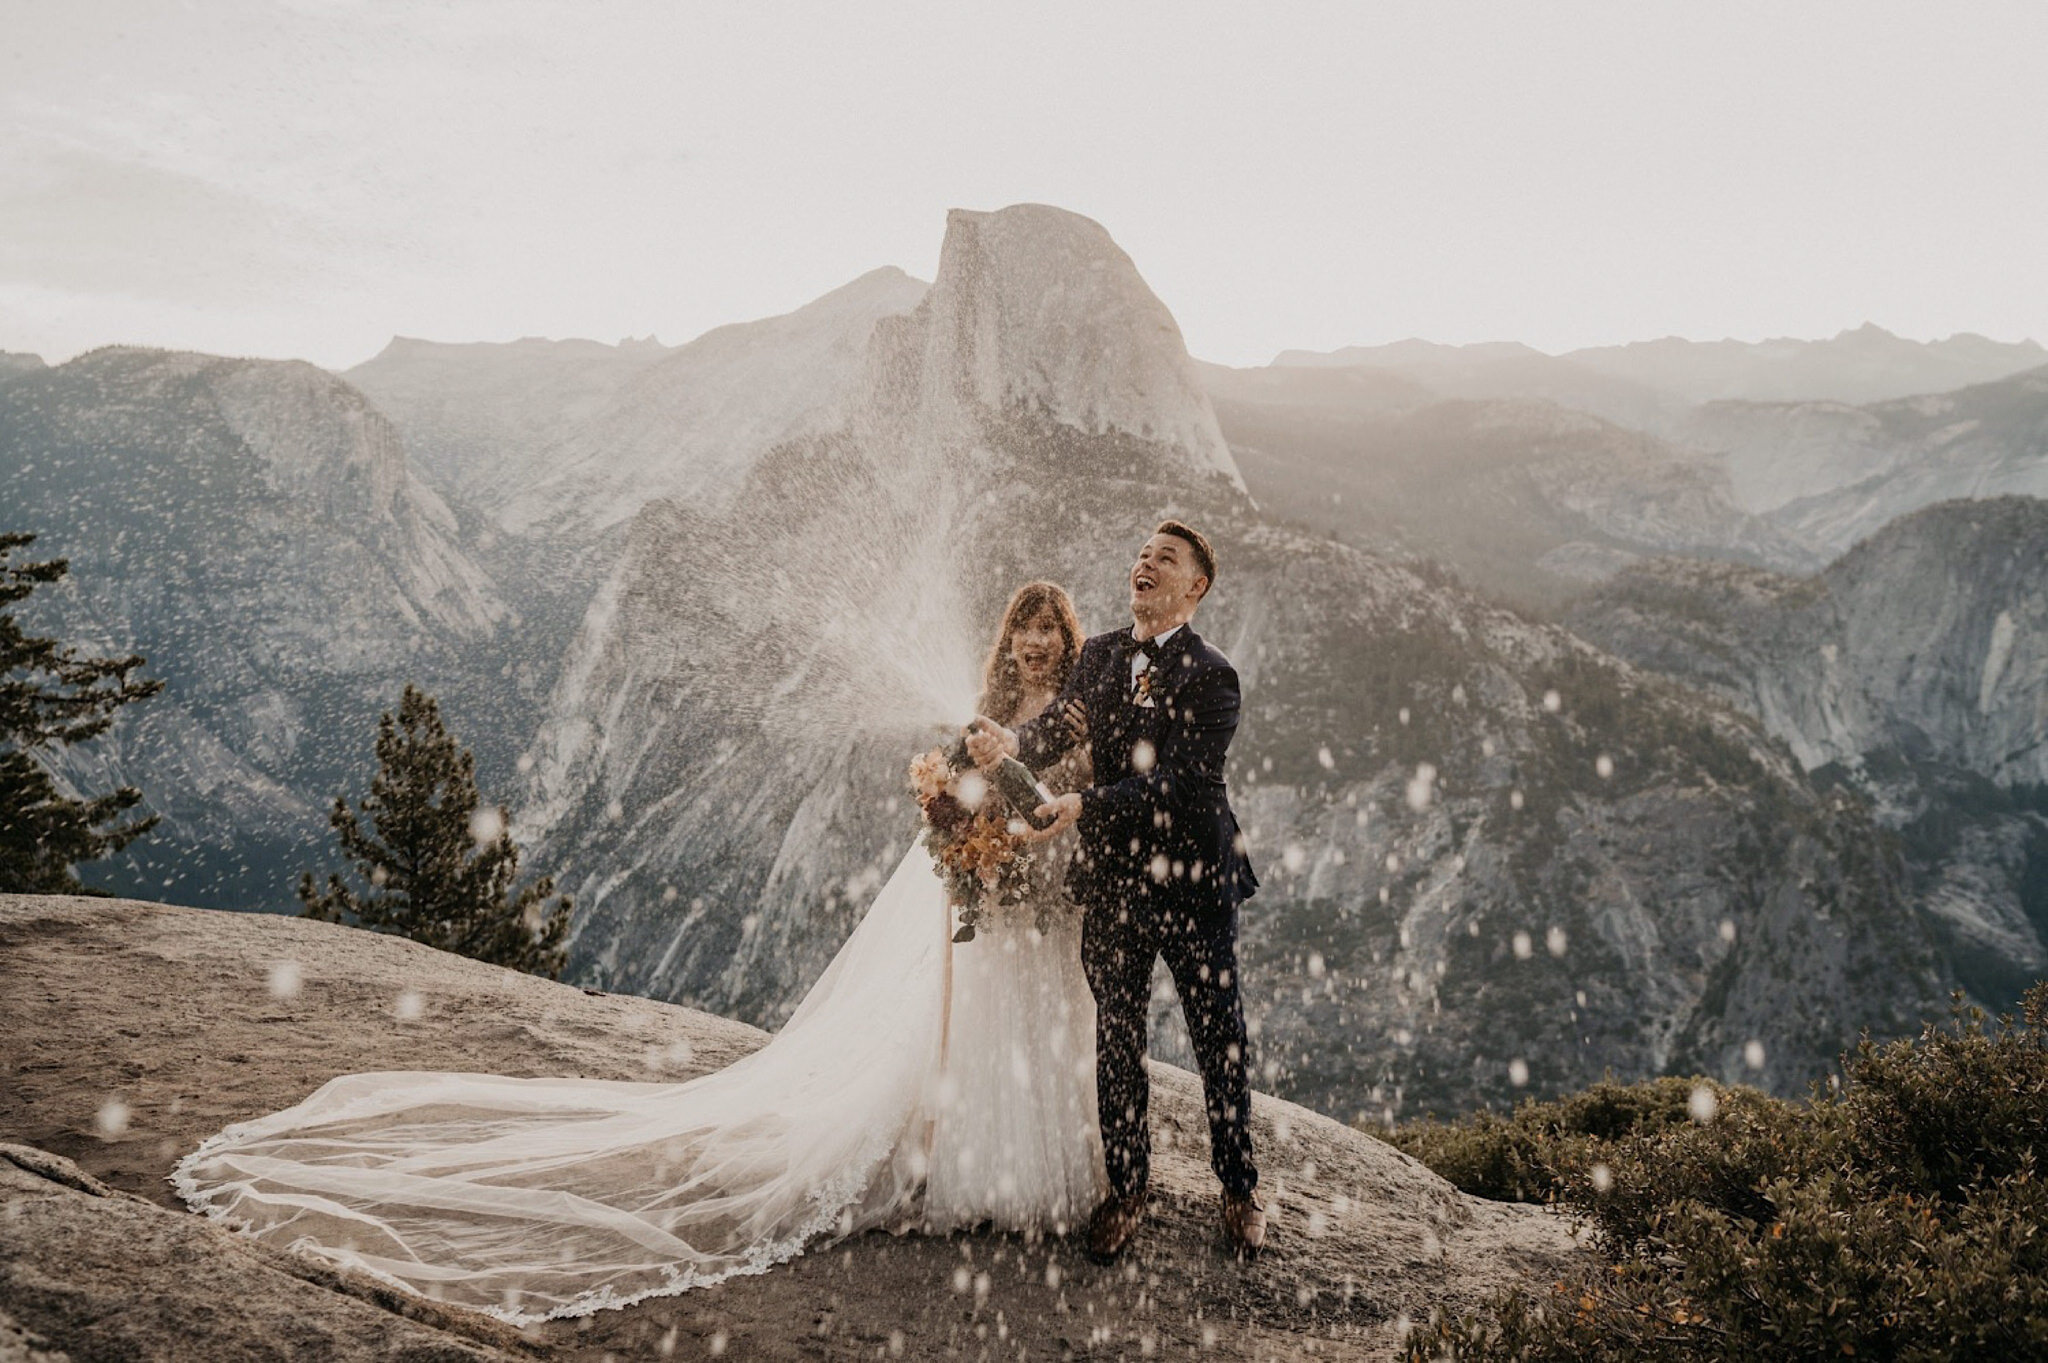 Bride and groom popped champagne to celebrate their elopement at Yosemite National Park during sunrise on Glacier Point